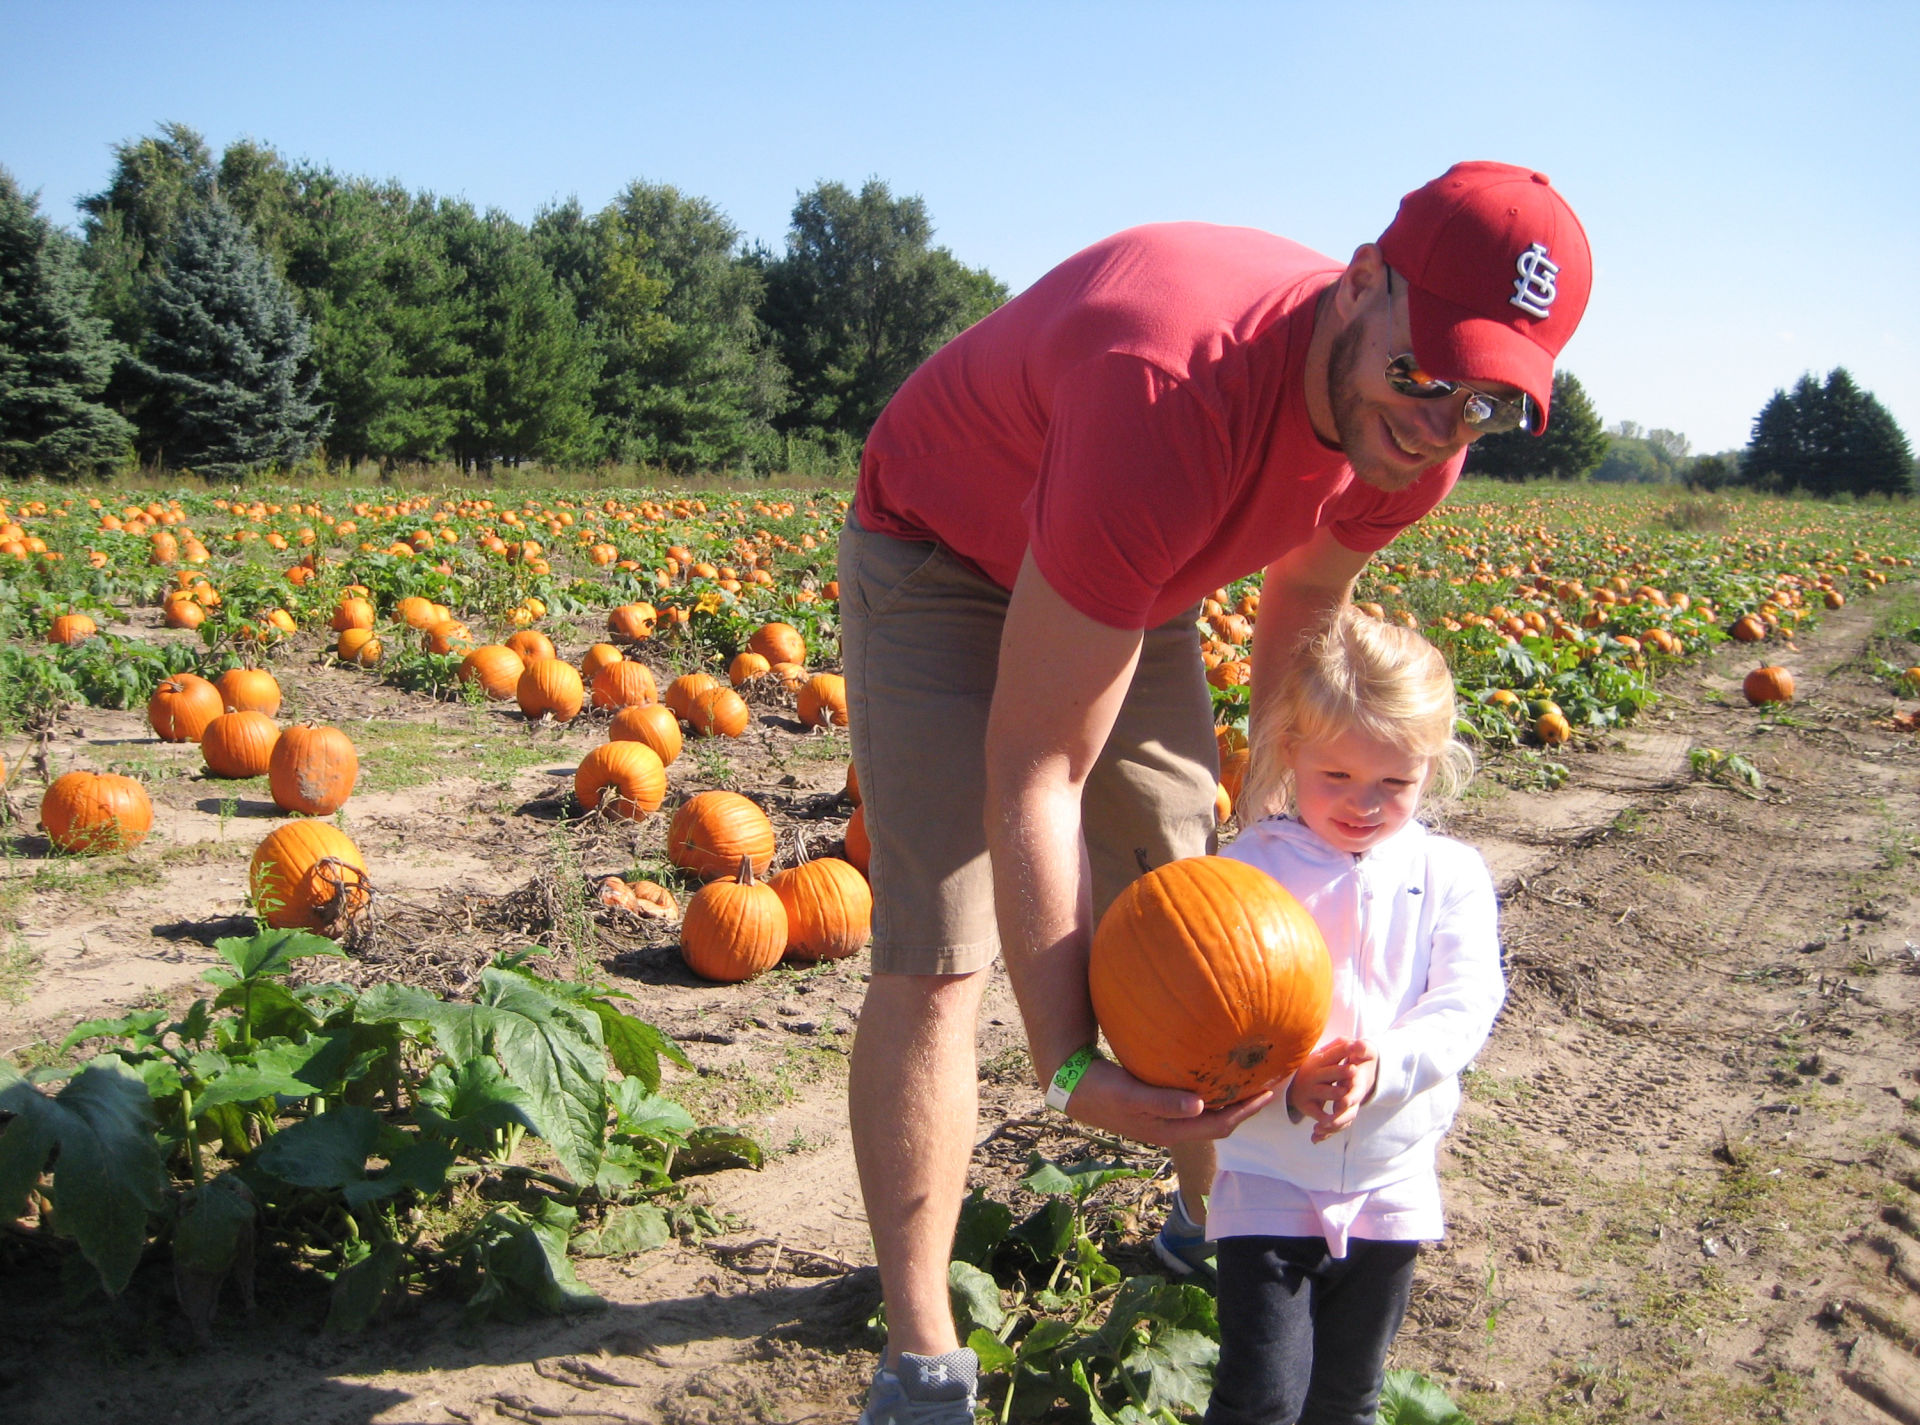 Kevin Coppinger took his nearly 3-year-old daughter, Mae, to choose a pumpkin at Waldoch Farm. The farm added a corn maze about five years ago. Owner Doug Joyer says adding such attractions has allowed him to live solely off income from the farm.